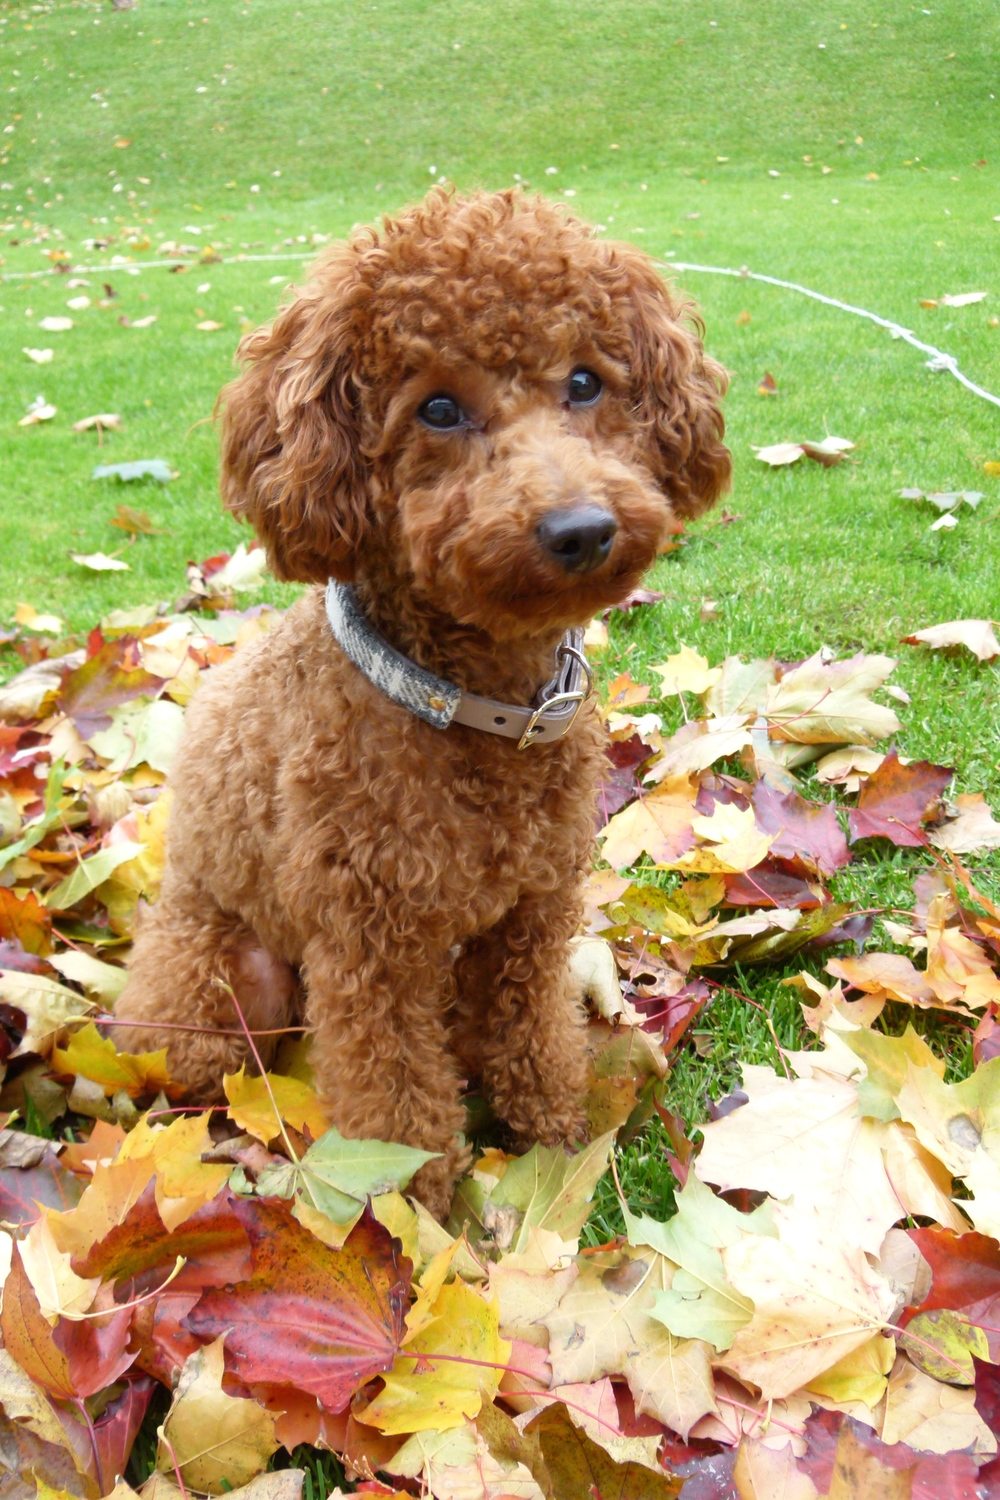 Nico the toy poodle puppy in his limited edition Harris tweed and leather collar in Canada